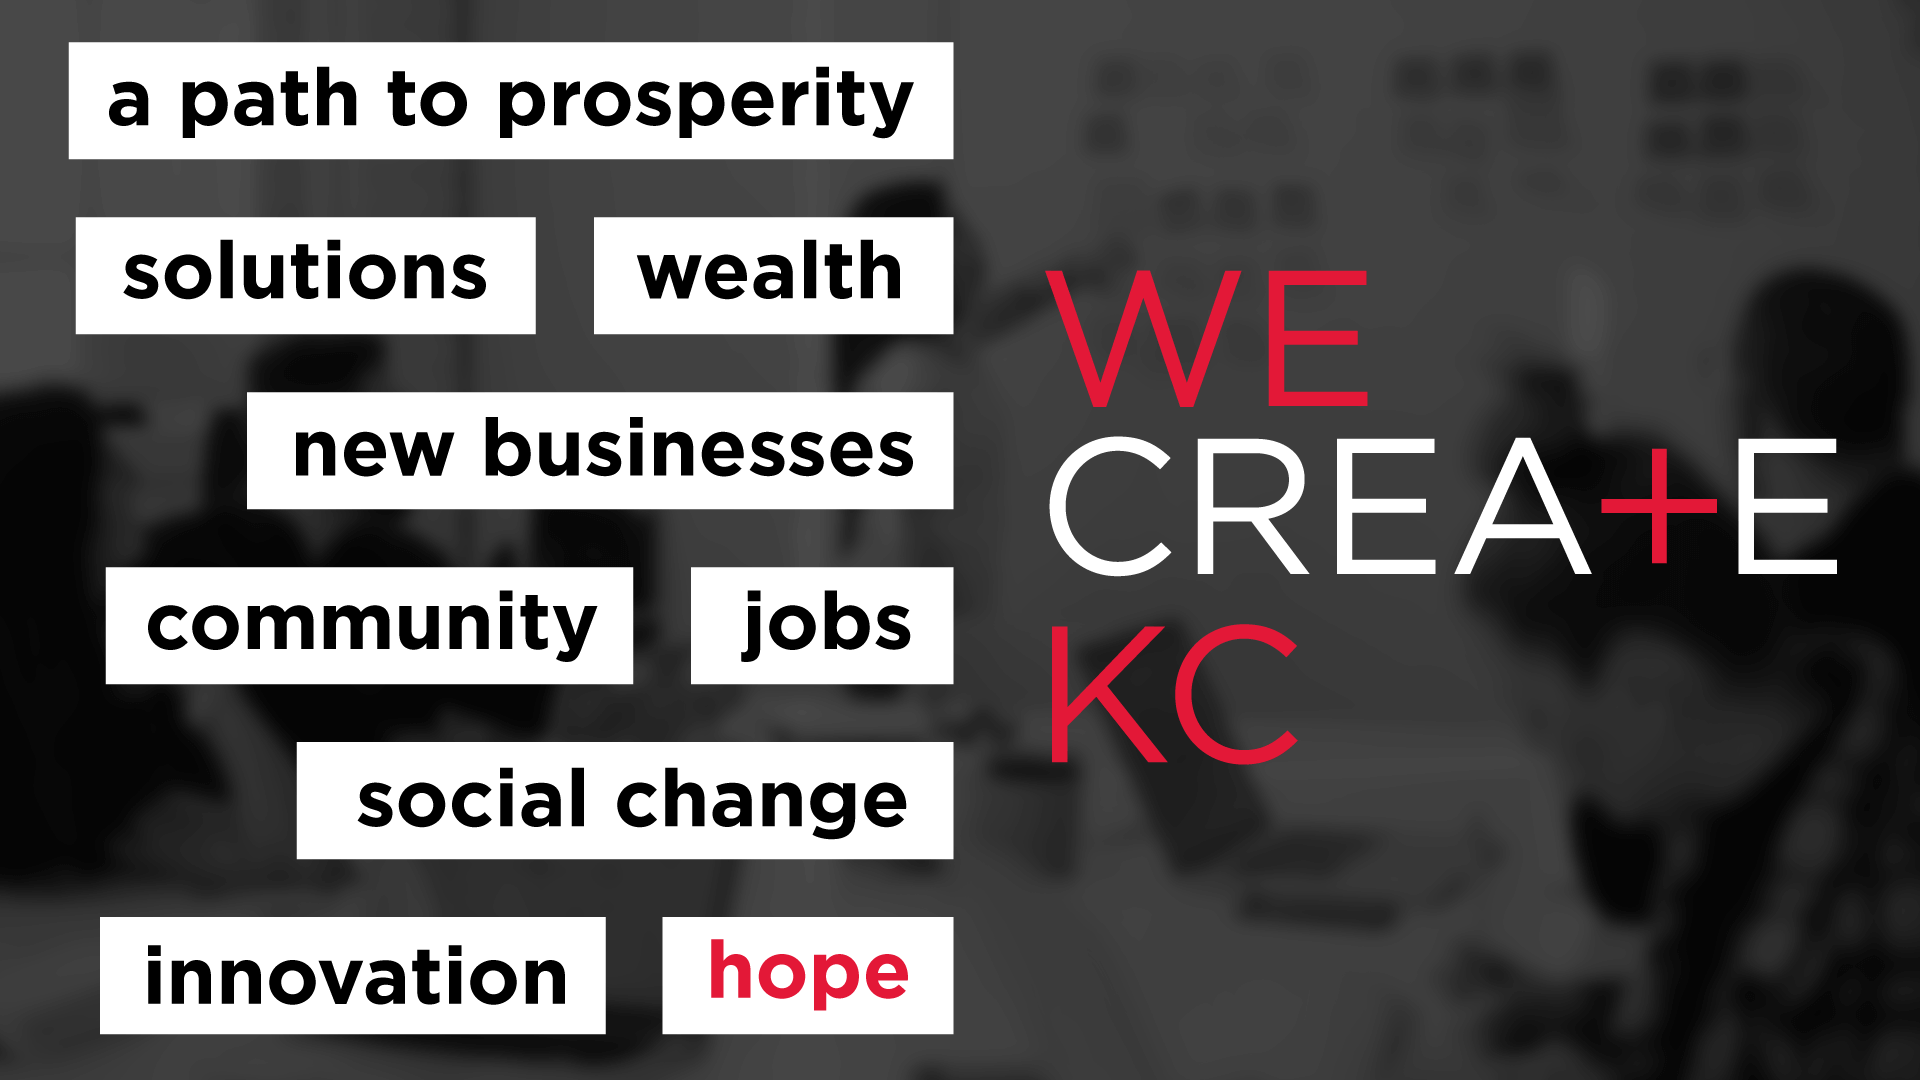 #WeCreateKC | KCSourceLink